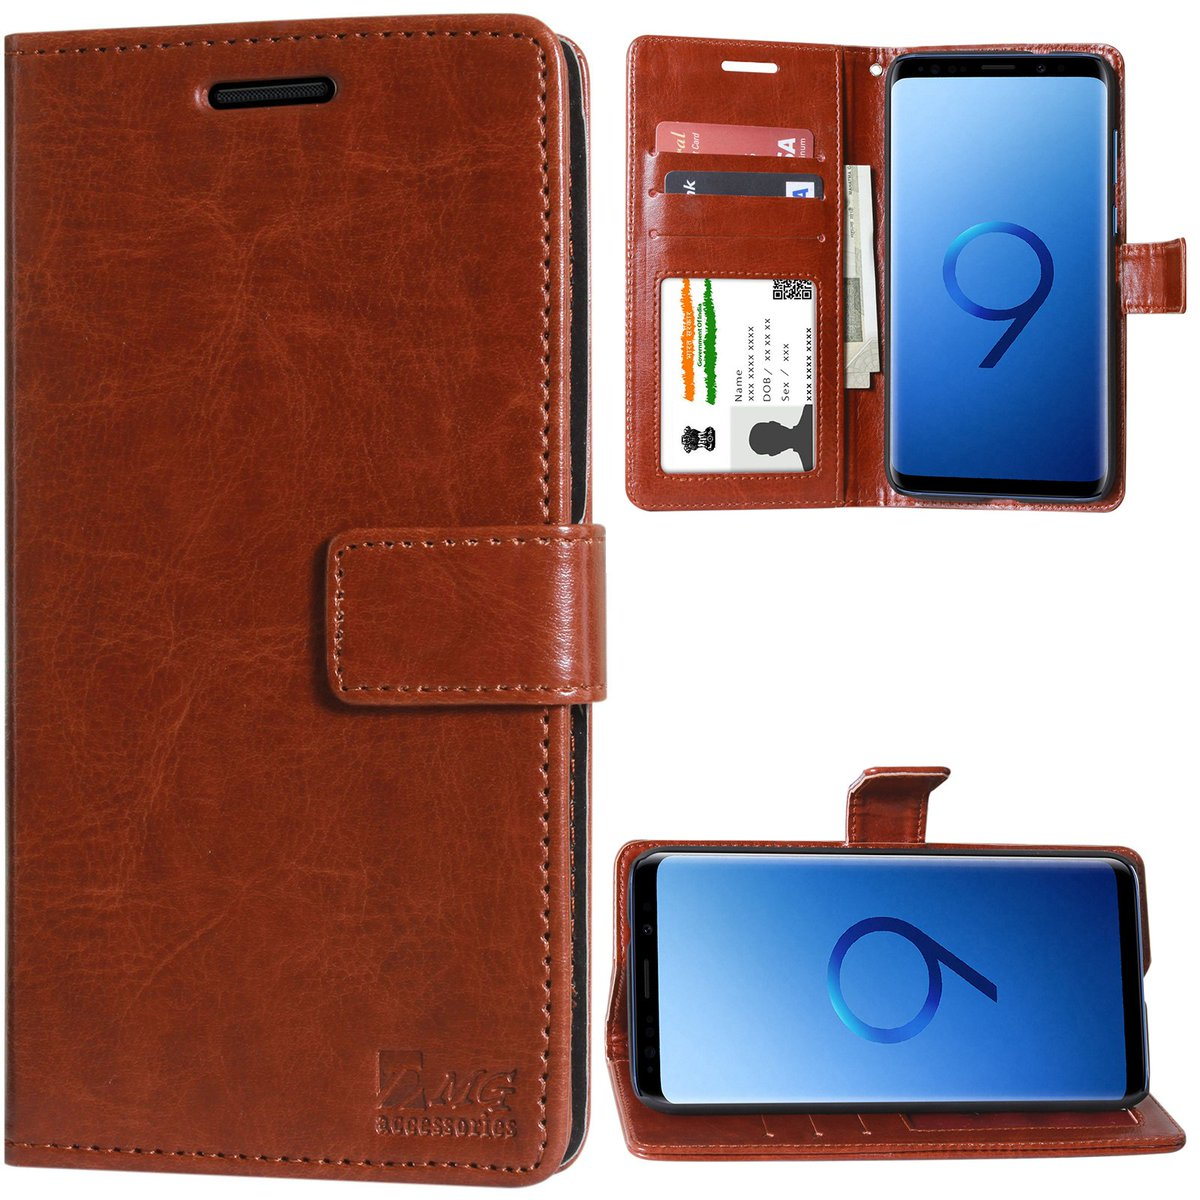 Samsung Galaxy S9 Leather Wallet Flip Cover Rs.  499 https://pooo.st/inx4A pic.twitter.com/dCtKLq1GTh